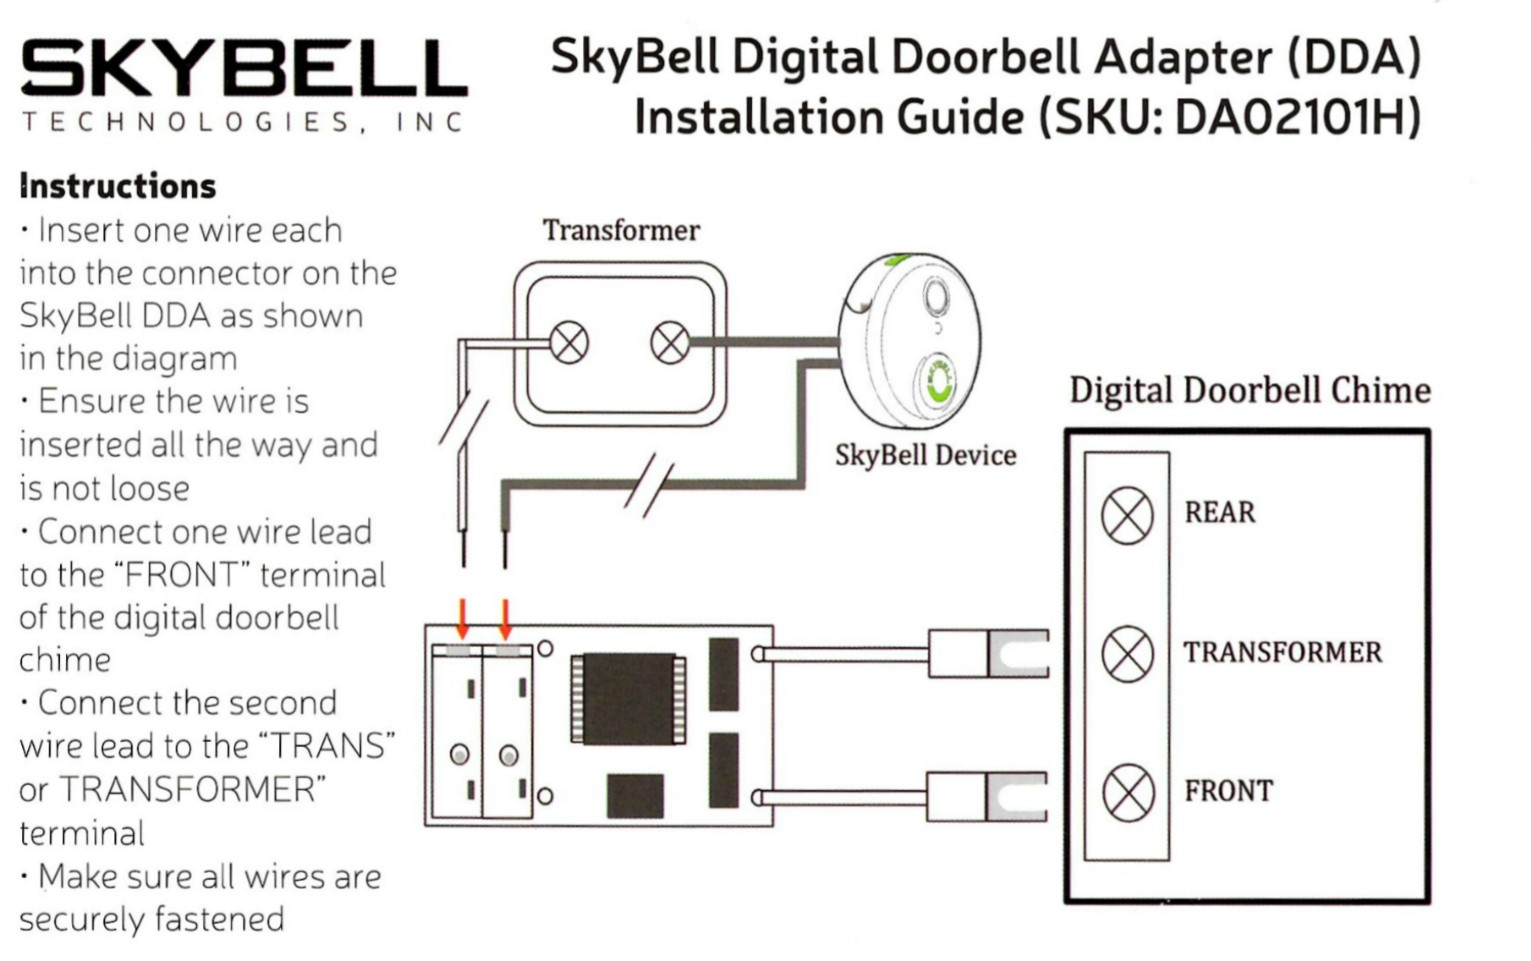 Doorbell Wiring Instructions Great Installation Of Diagram Byron Do I Need A Digital Adapter How Install It Skybell Rh Skybelltechnologies Zendesk Com Nest